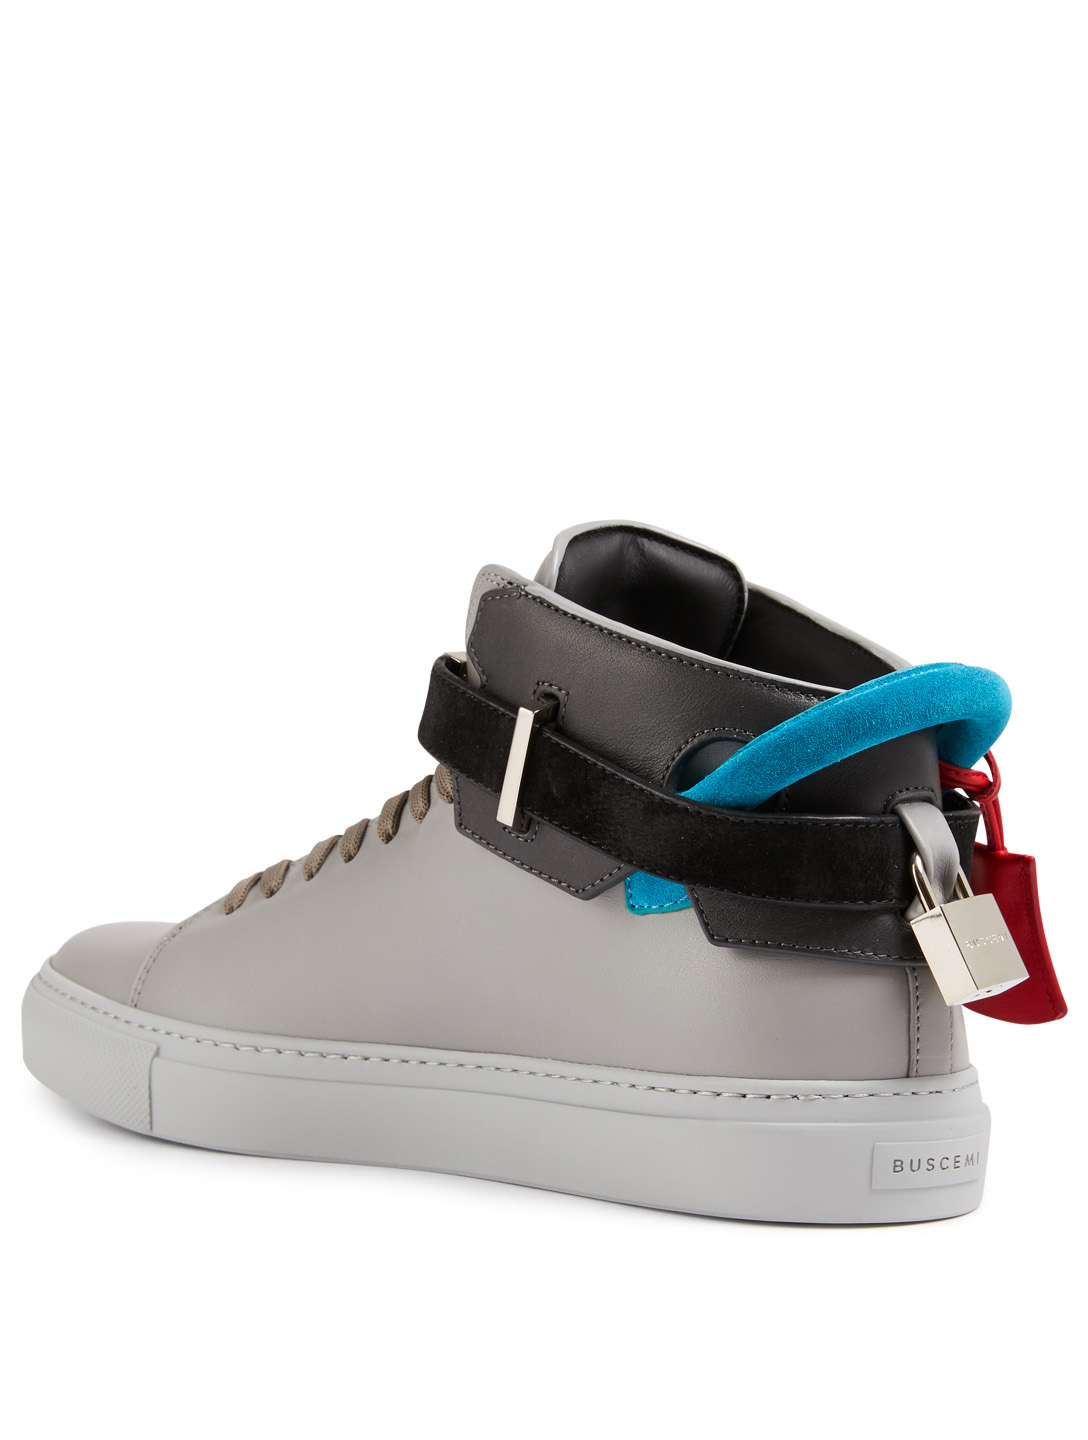 BUSCEMI 100MM Leather Sneakers Men's Grey